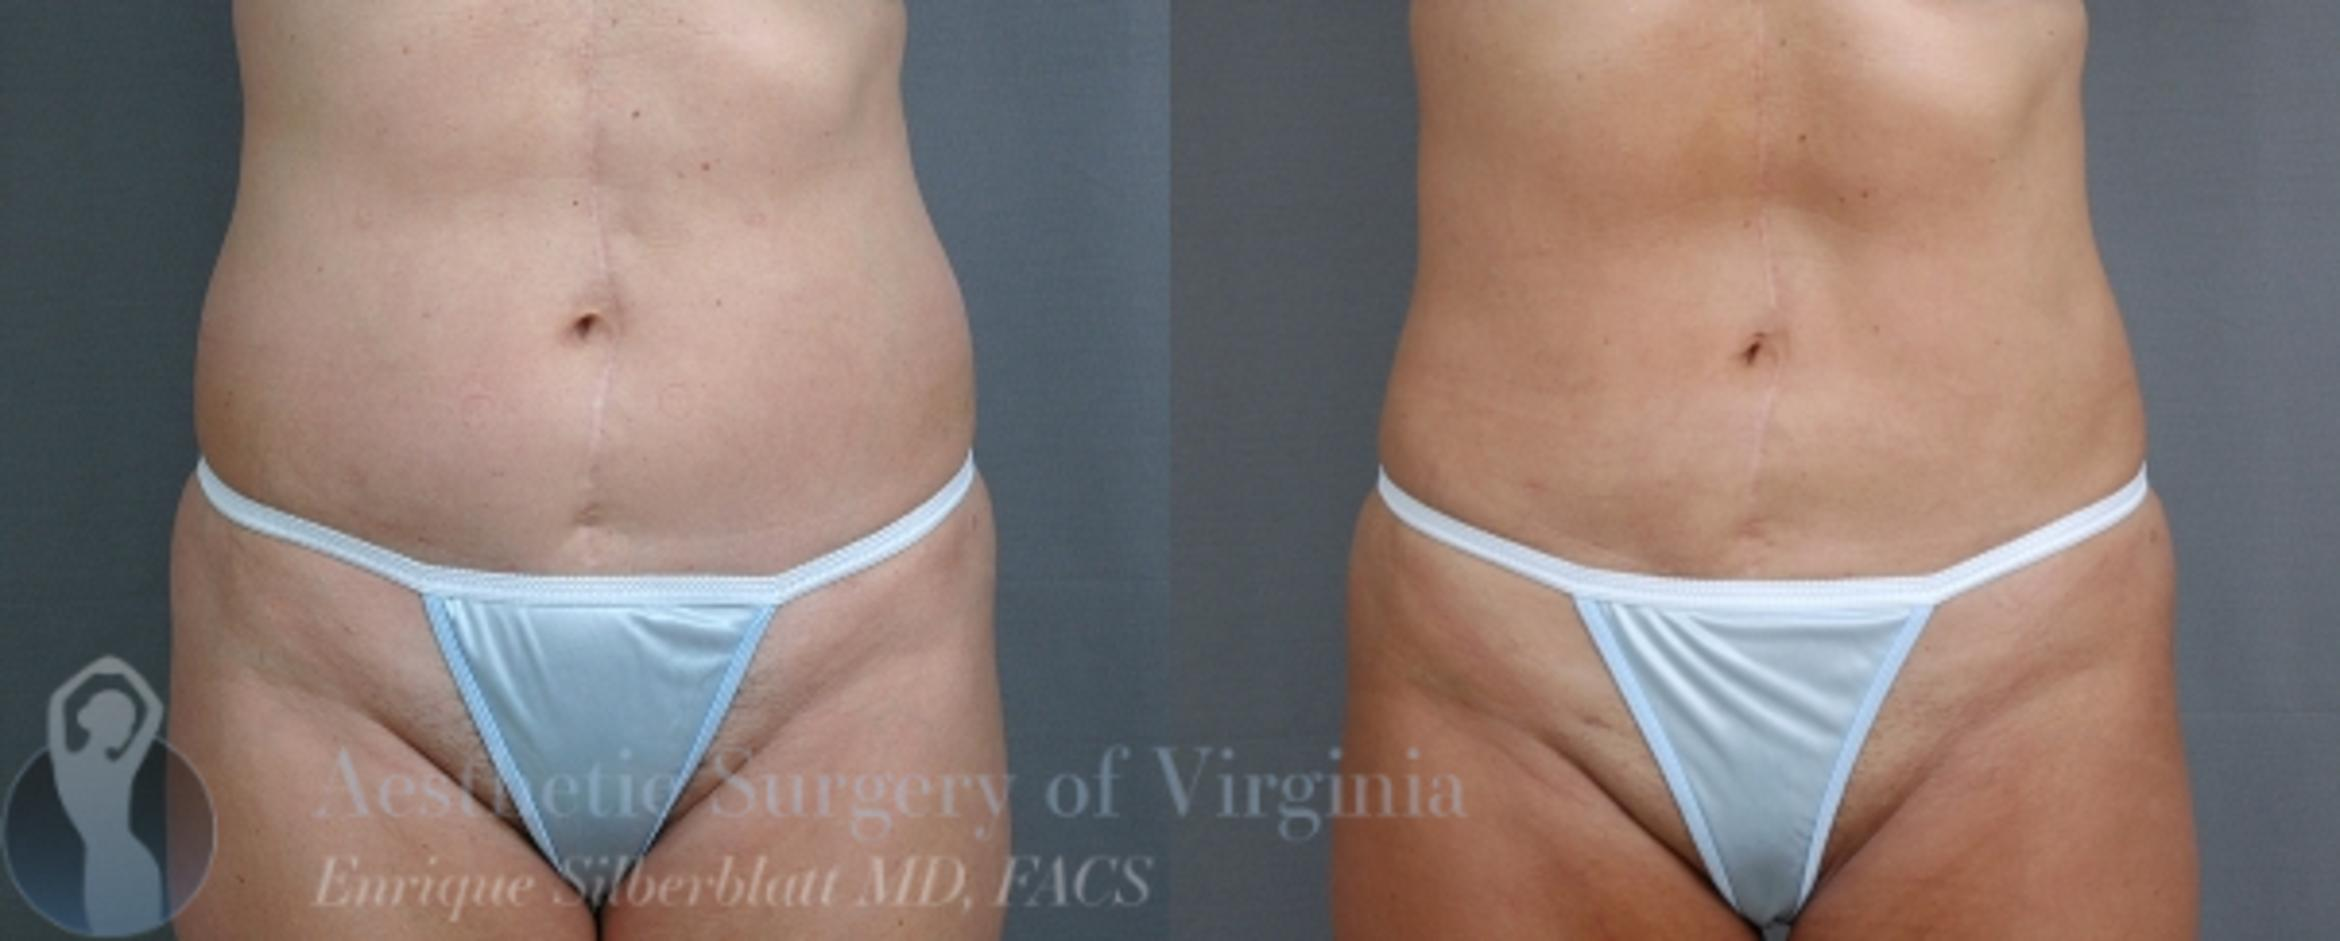 Liposuction Case 37 Before & After View #1 | Roanoke, VA | Aesthetic Surgery of Virginia: Enrique Silberblatt, MD